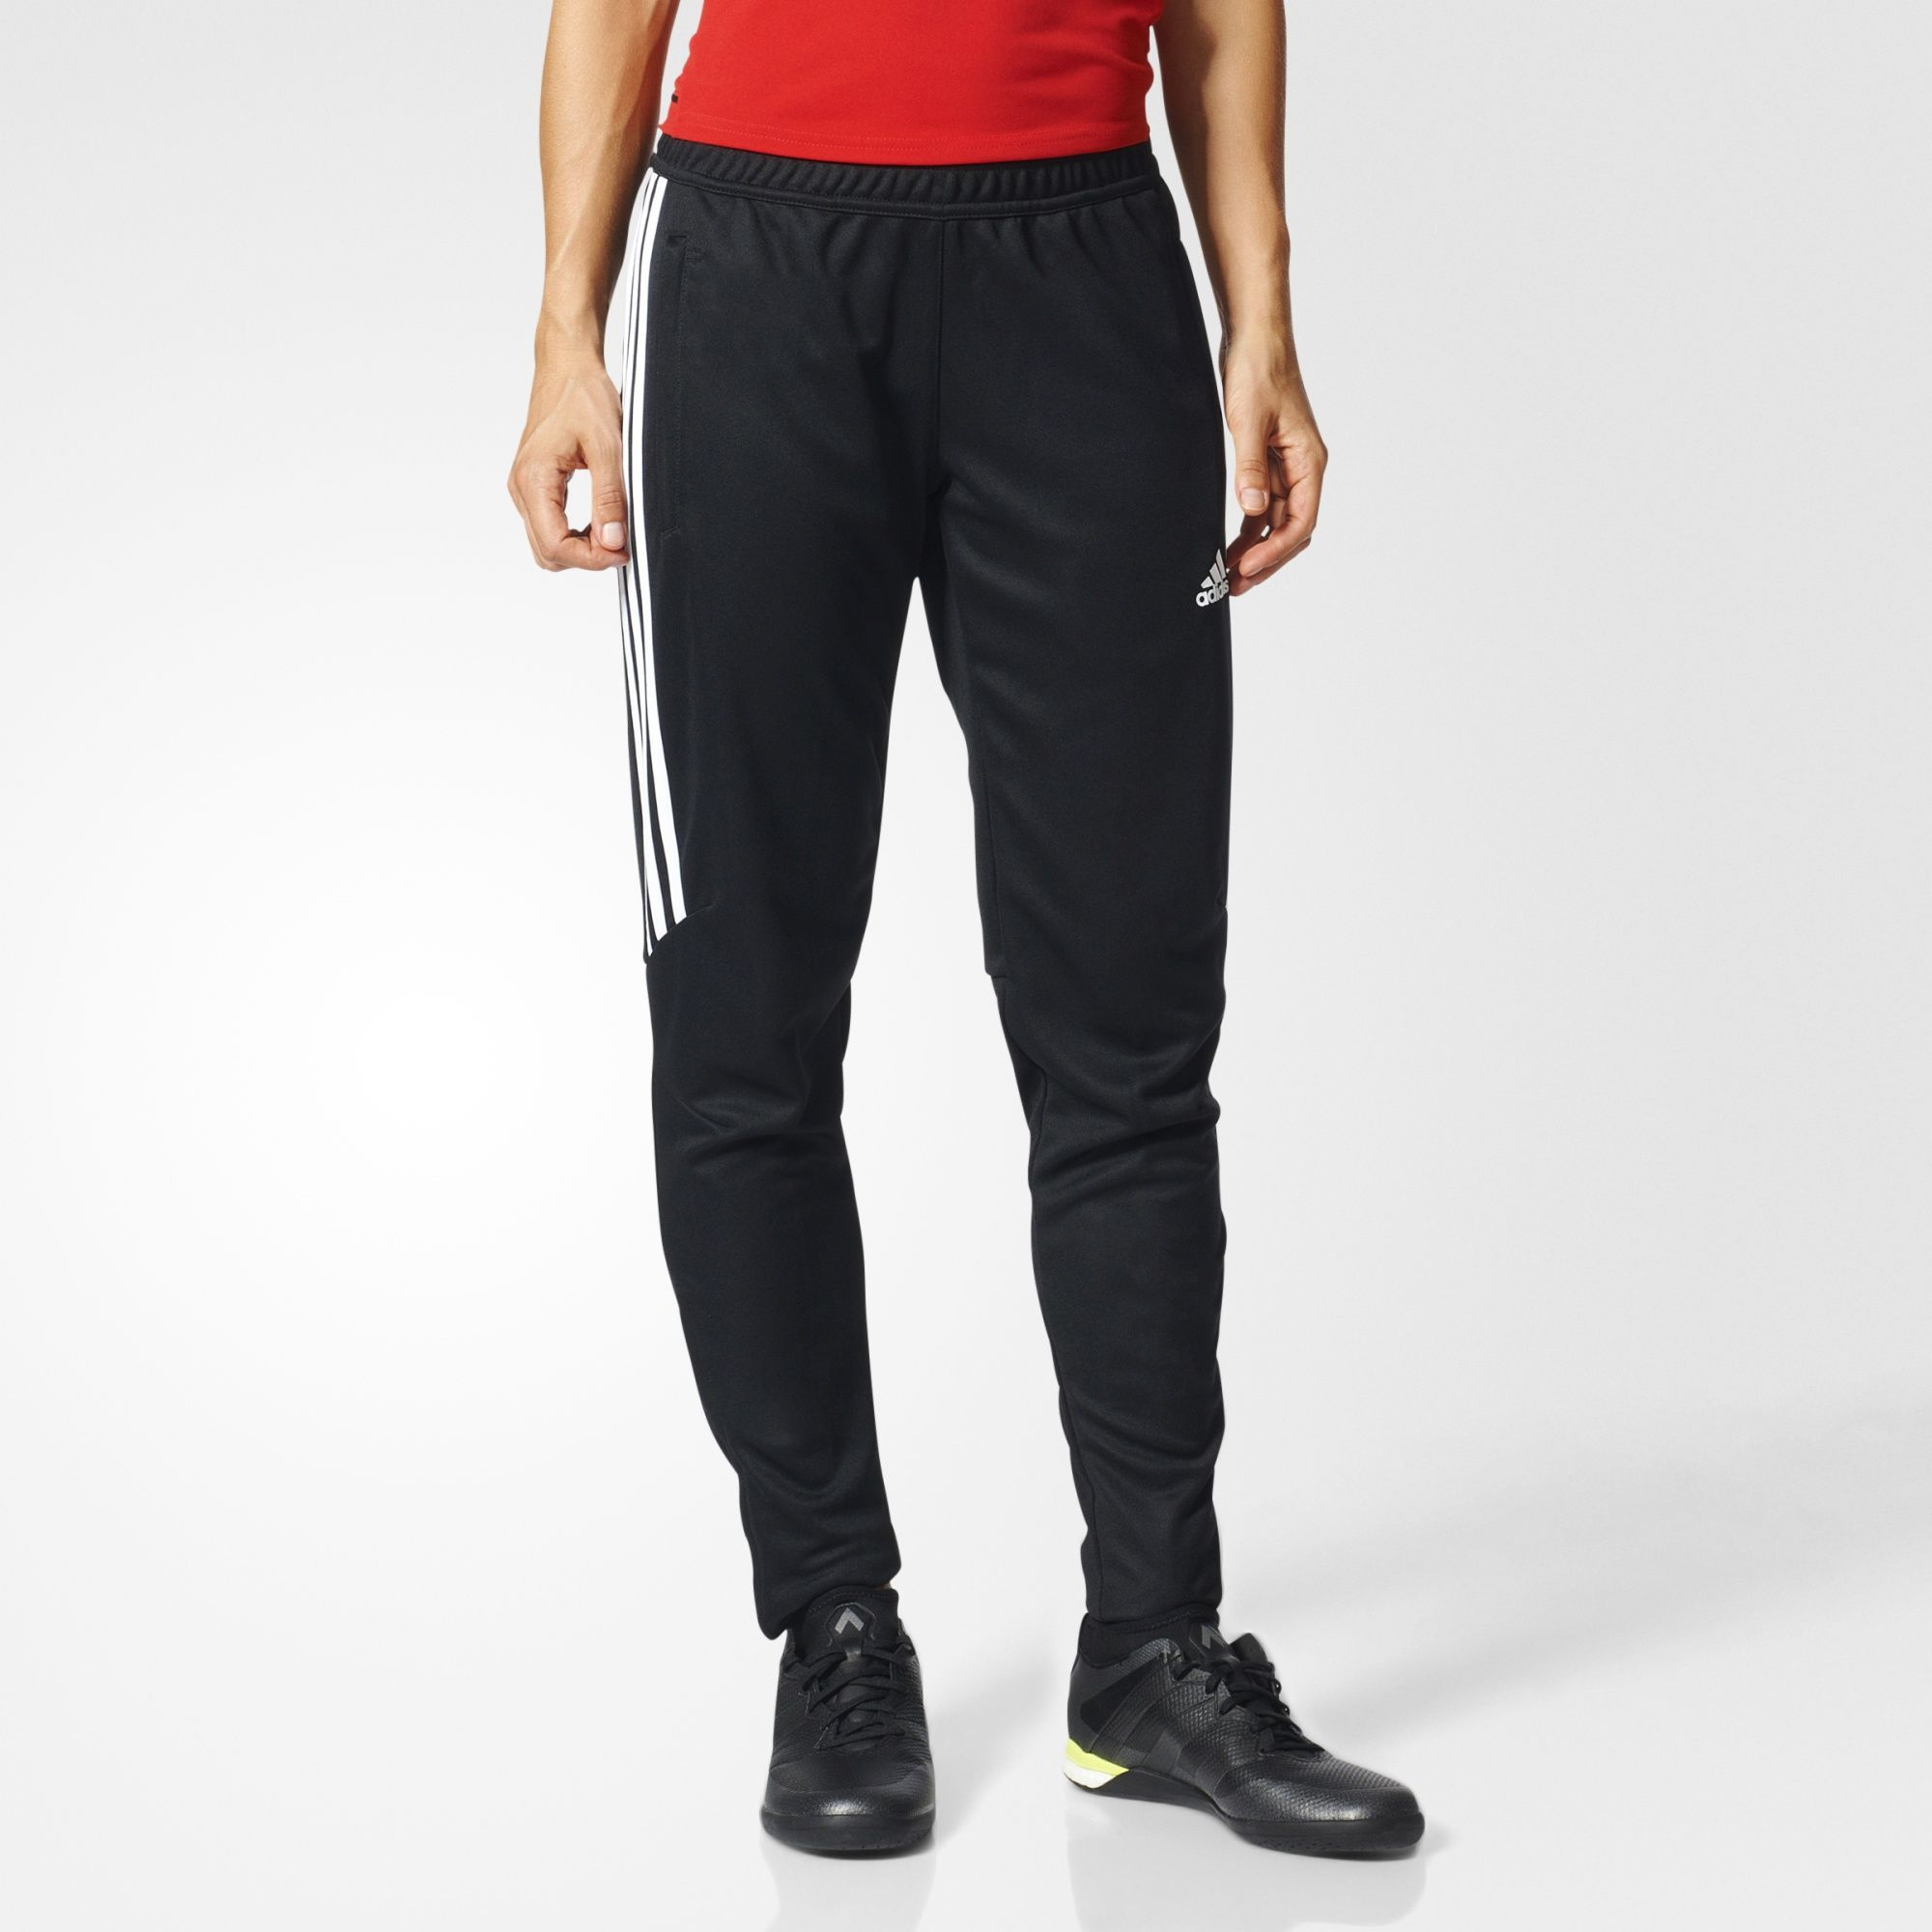 502186cf5 adidas - Tiro 17 Training Pants Size Large Black / White / White or Grey /  White / White